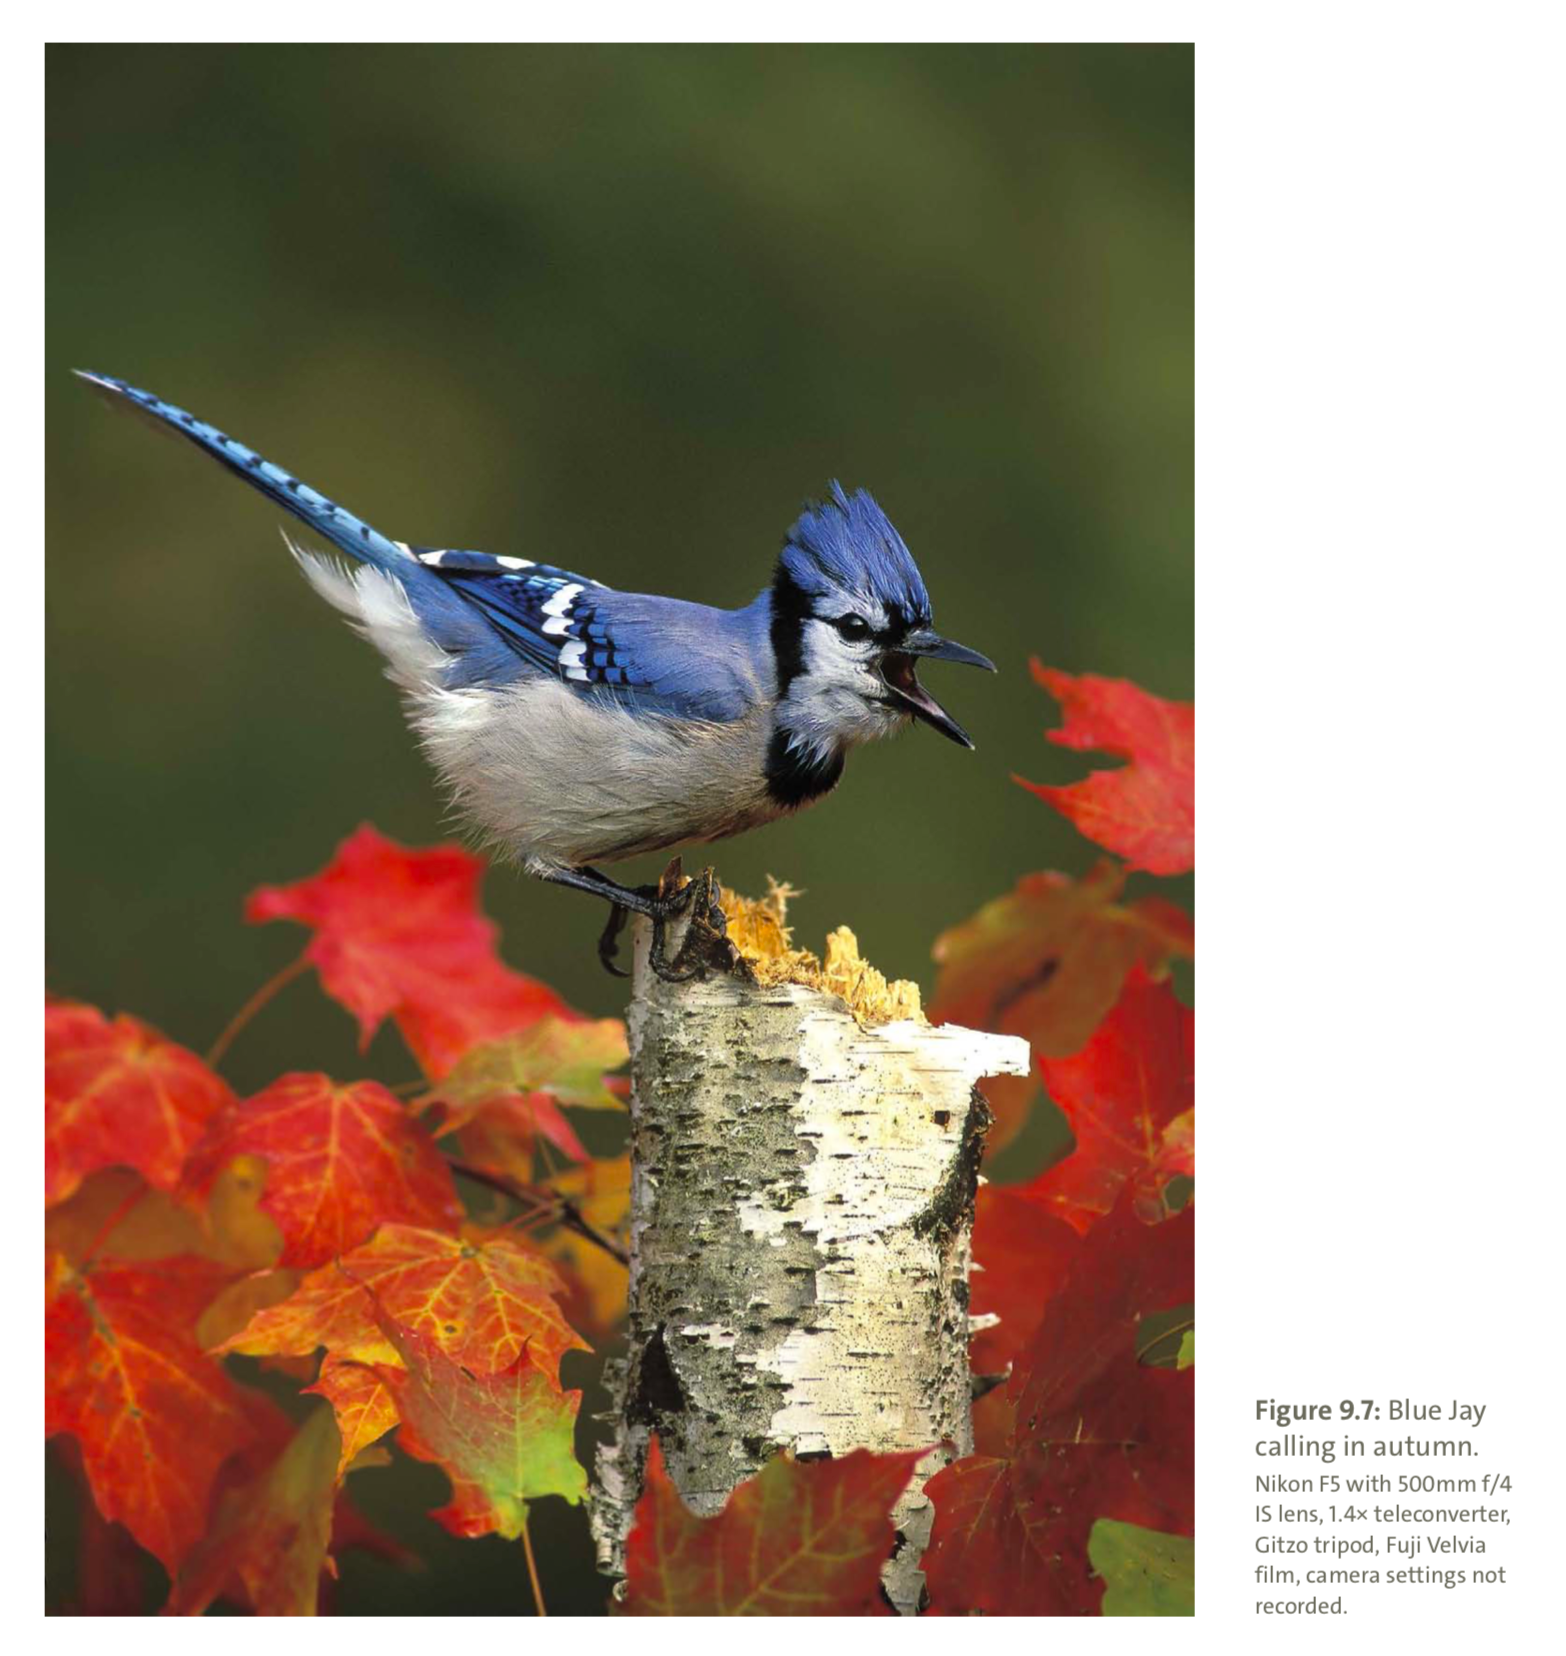 Figure 9.7 from Mastering Bird Photography  Photo: Marie Read